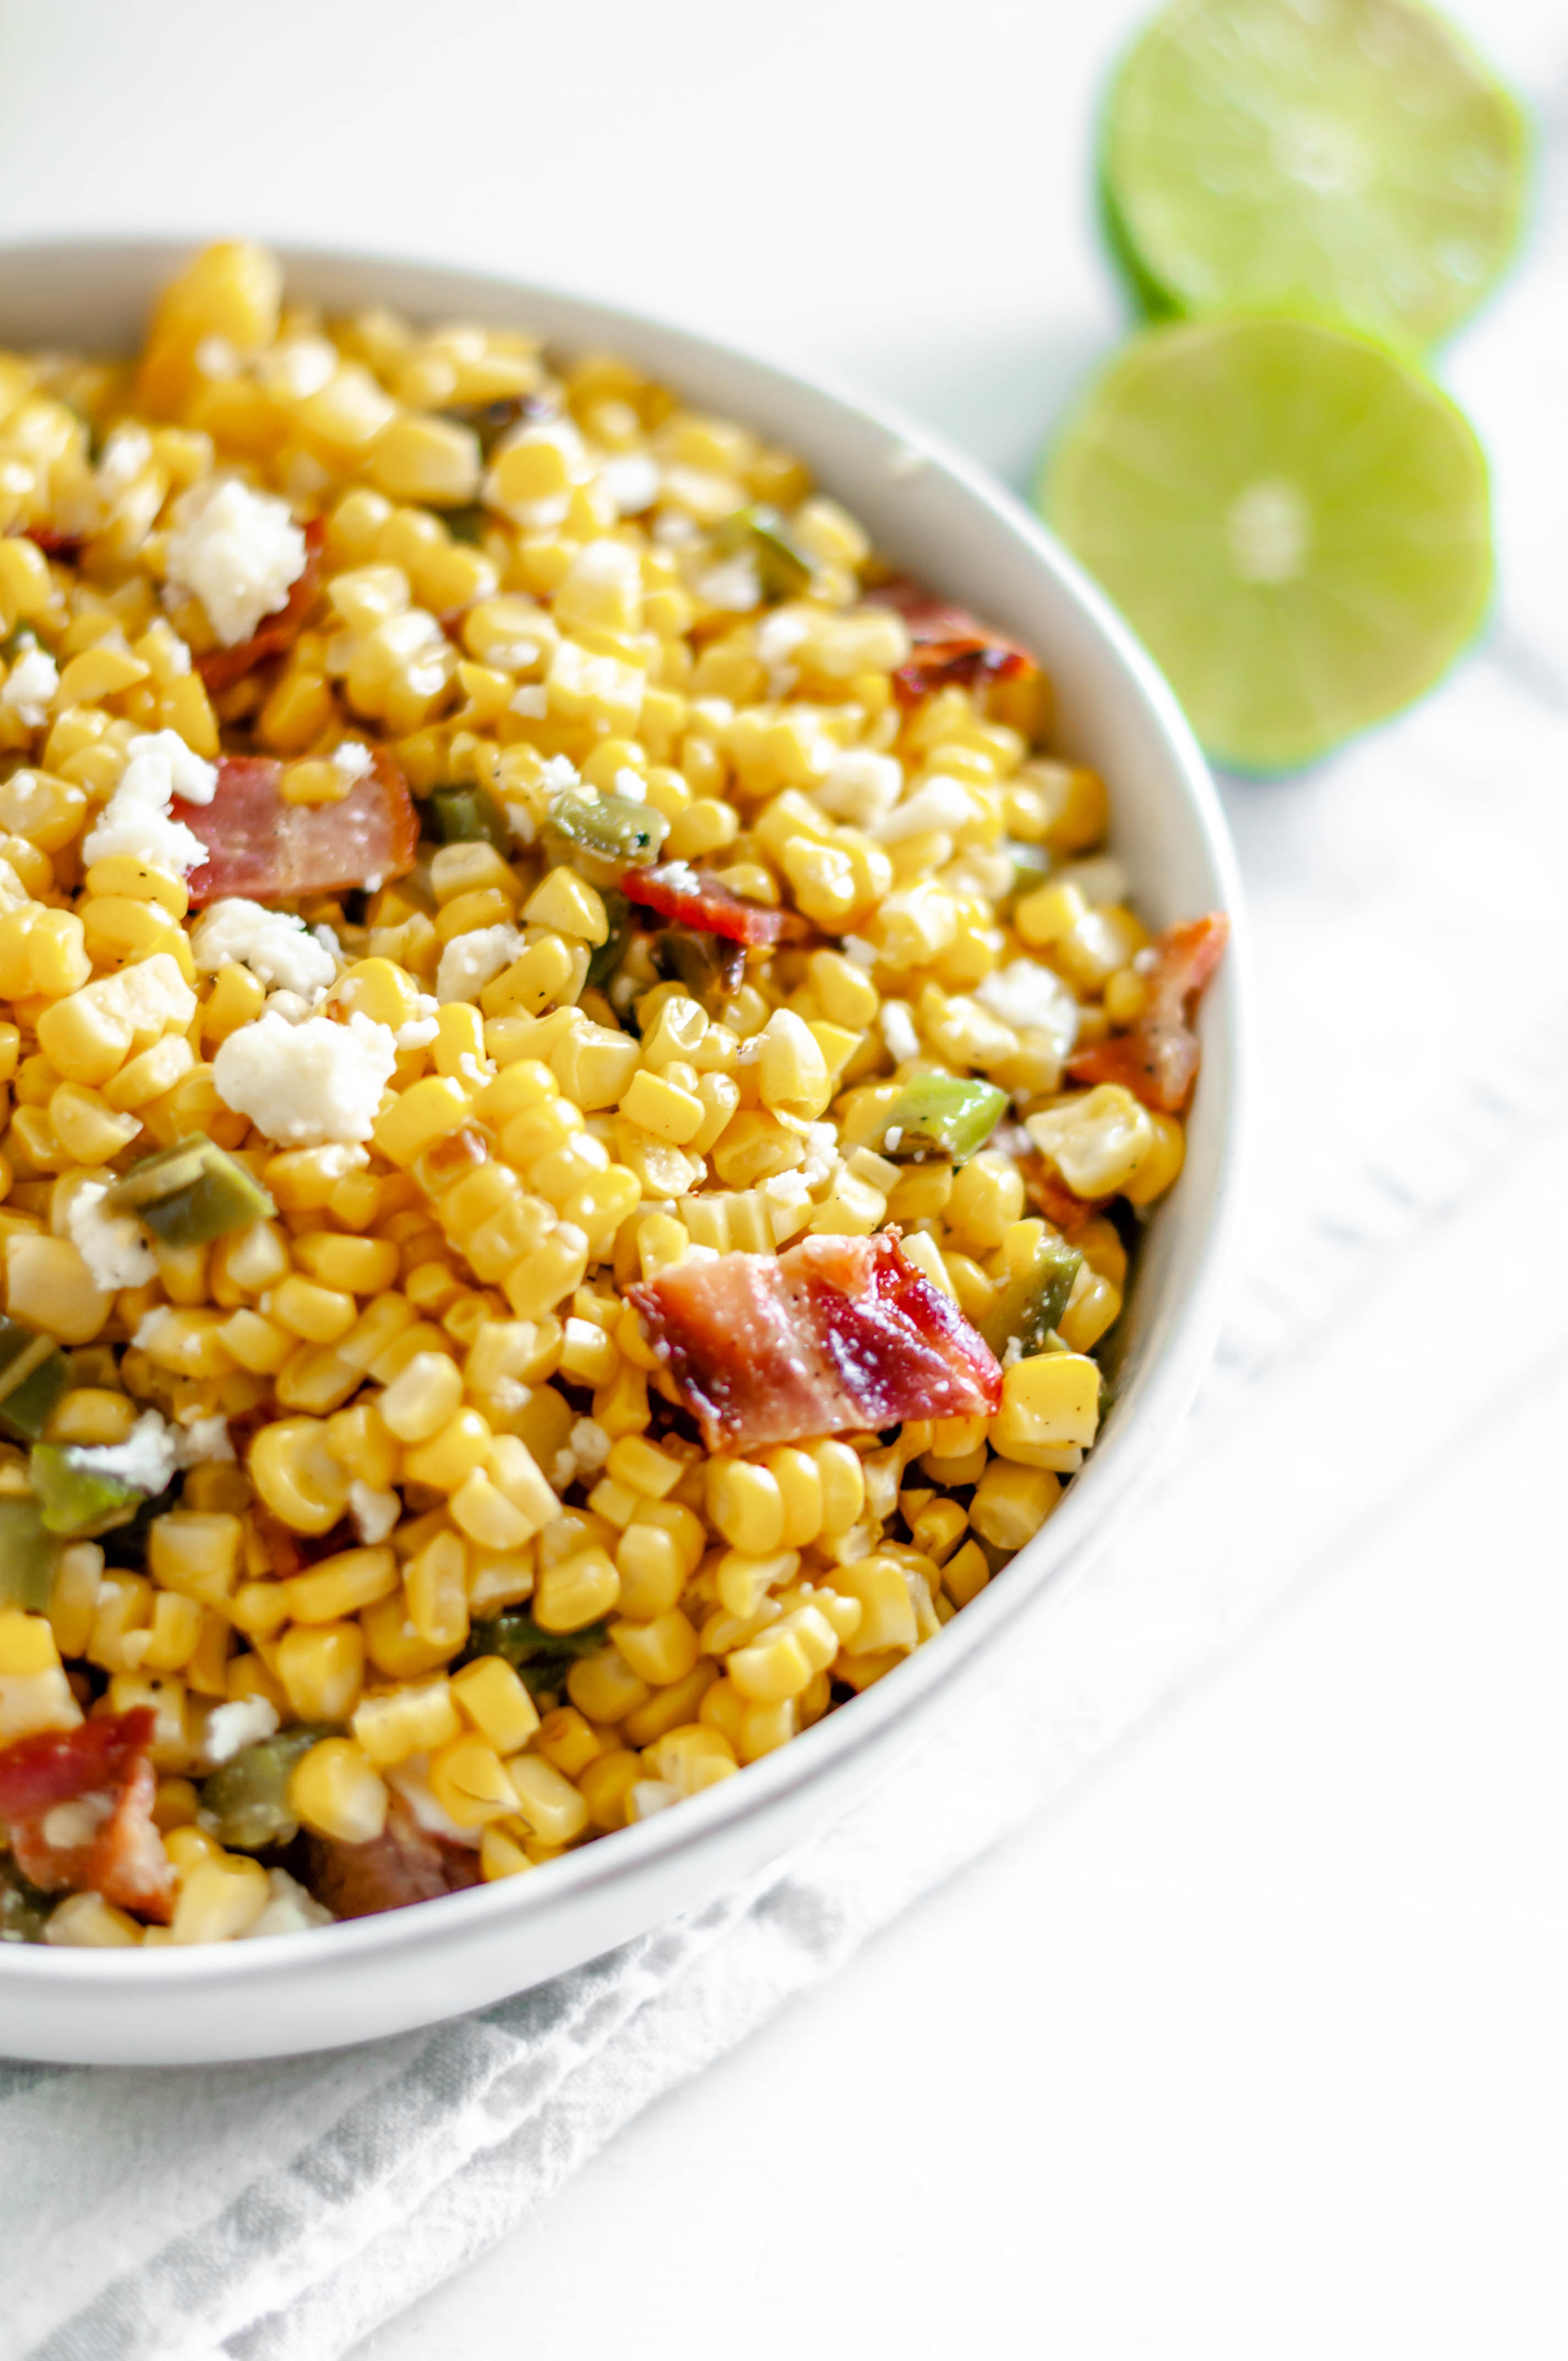 This Grilled Corn Salad with Bacon and Jalapeno is your next potluck dish. Sweet grilled corn, smoky bacon, spicy jalapeno and a bright lime dressing. The perfect addition to any summer barbecue or potluck.